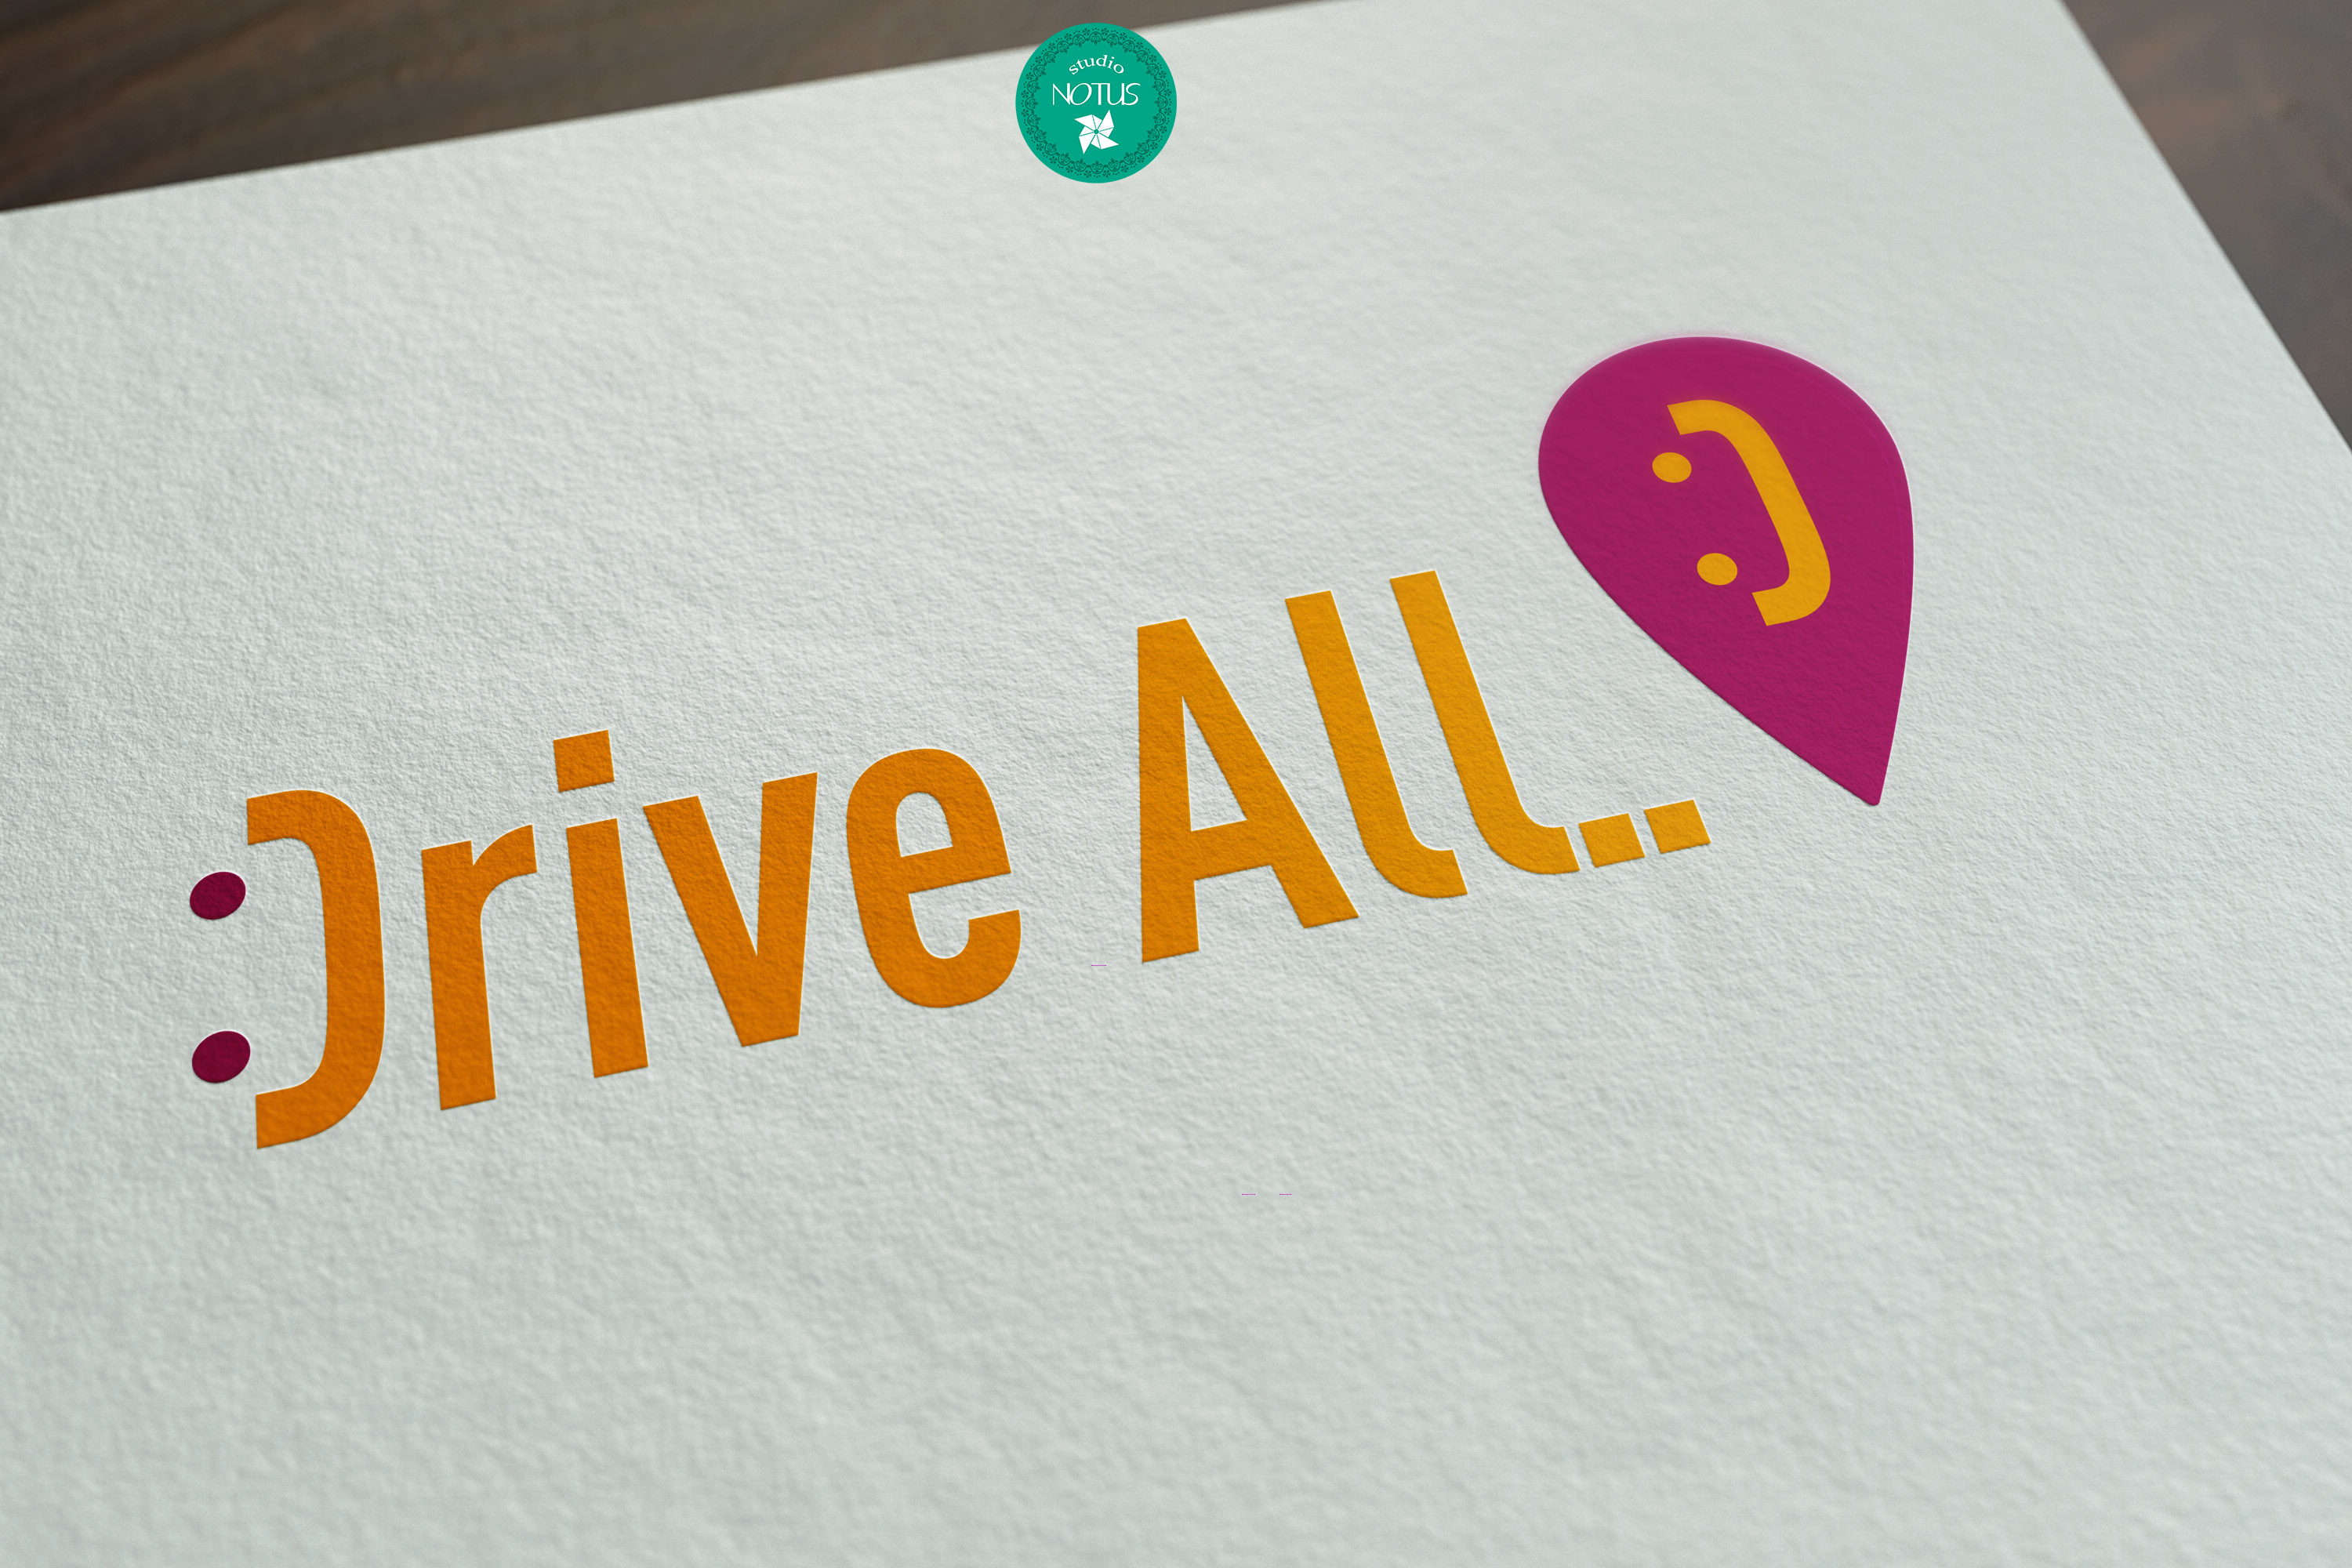 Drive All